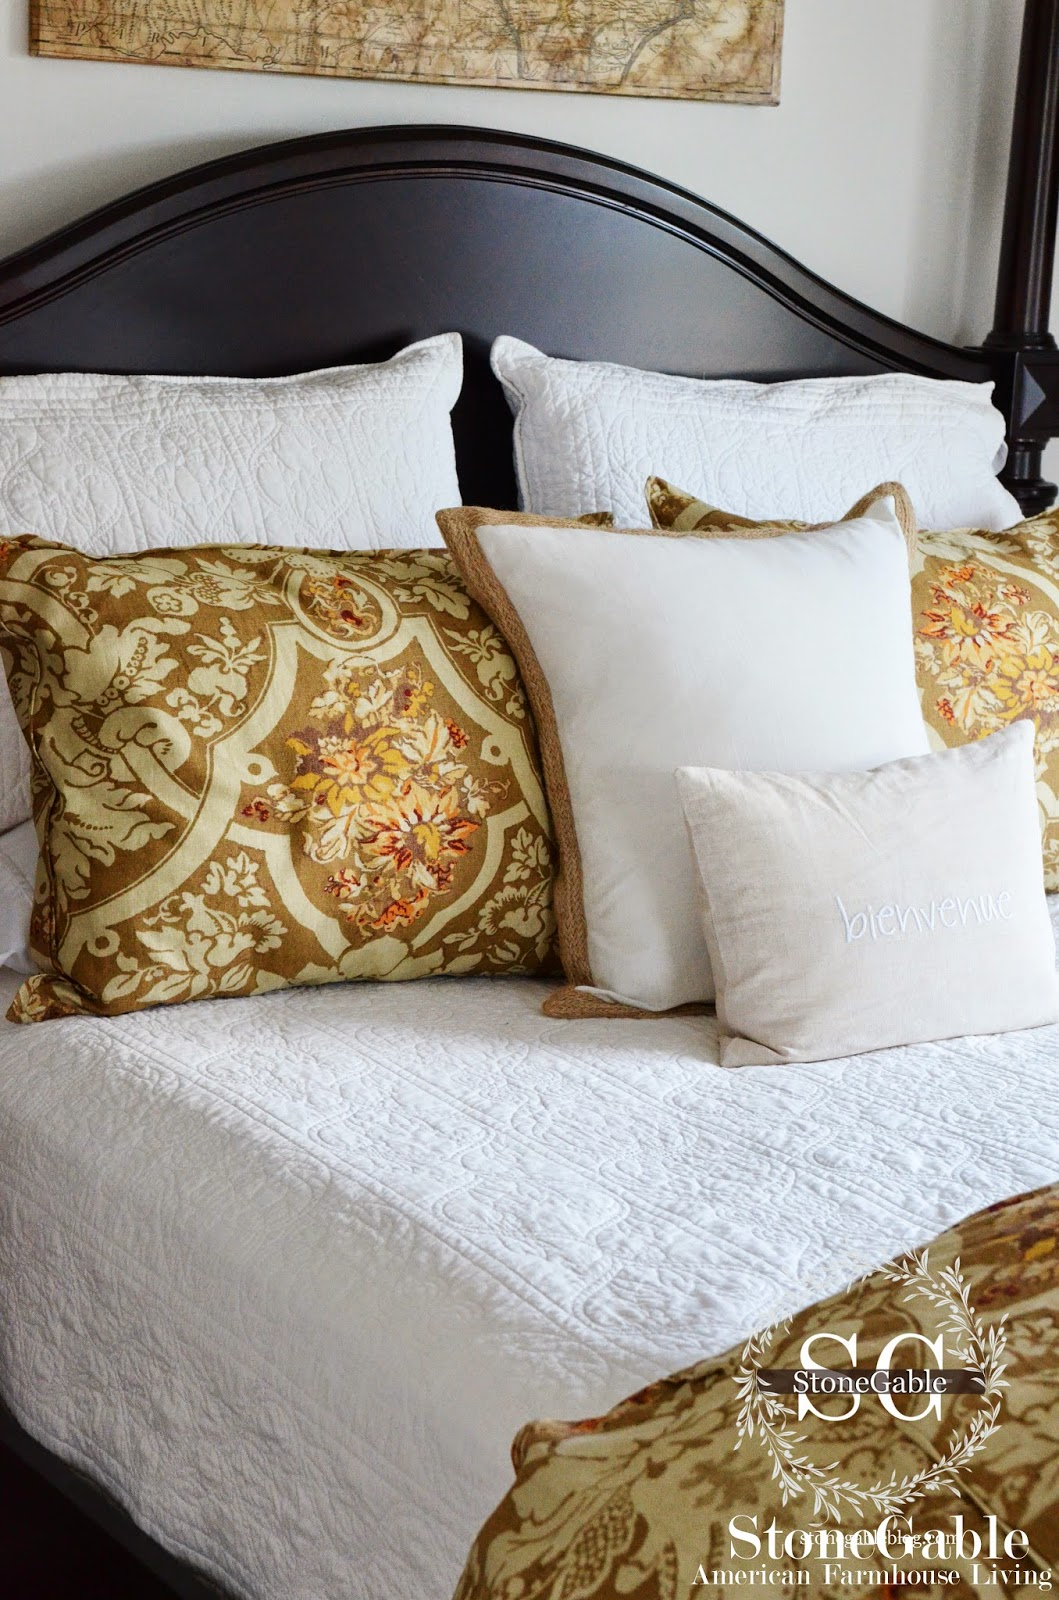 10 ESSENTIALS OF A COZY GUEST ROOM. 10 ESSENTIALS OF A COZY GUEST ROOM   StoneGable